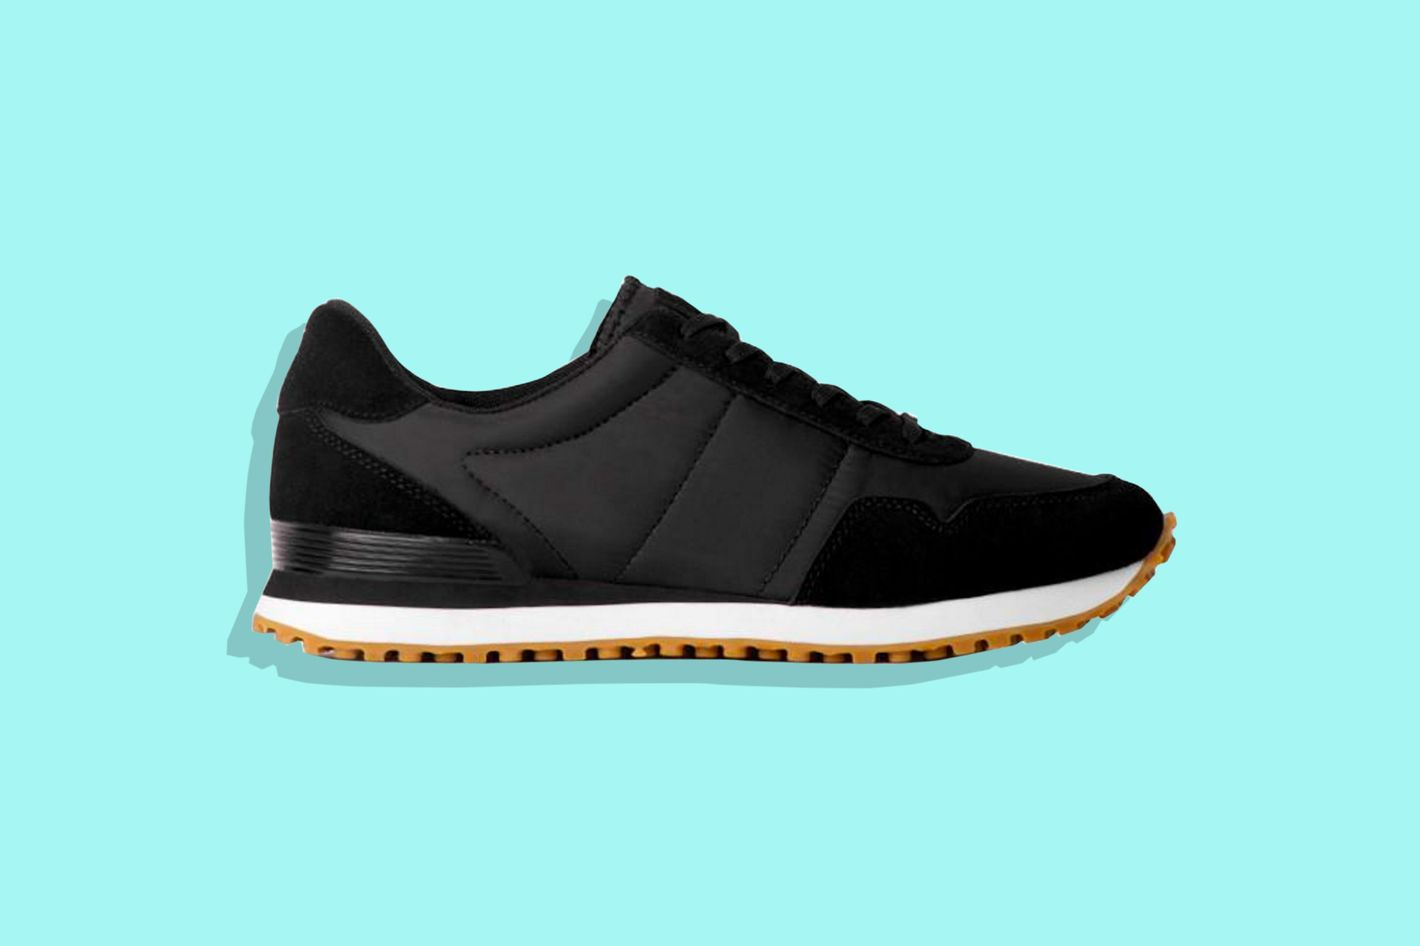 greats rosen sneakers - strategist best fitness gear and best logo free sneakers